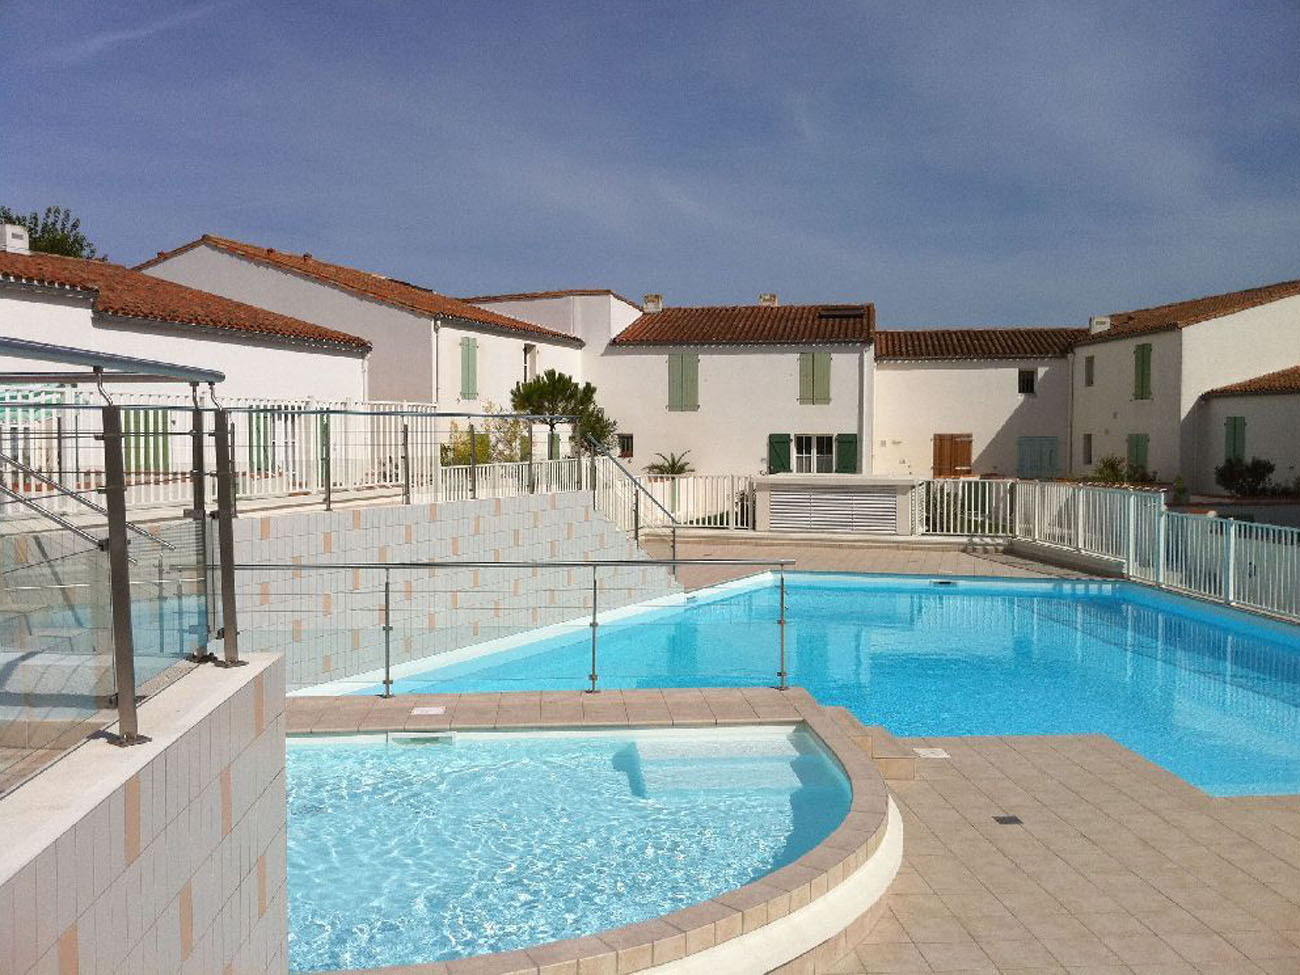 Location Appartement Ile de Ré - Vue-Mer - Piscine